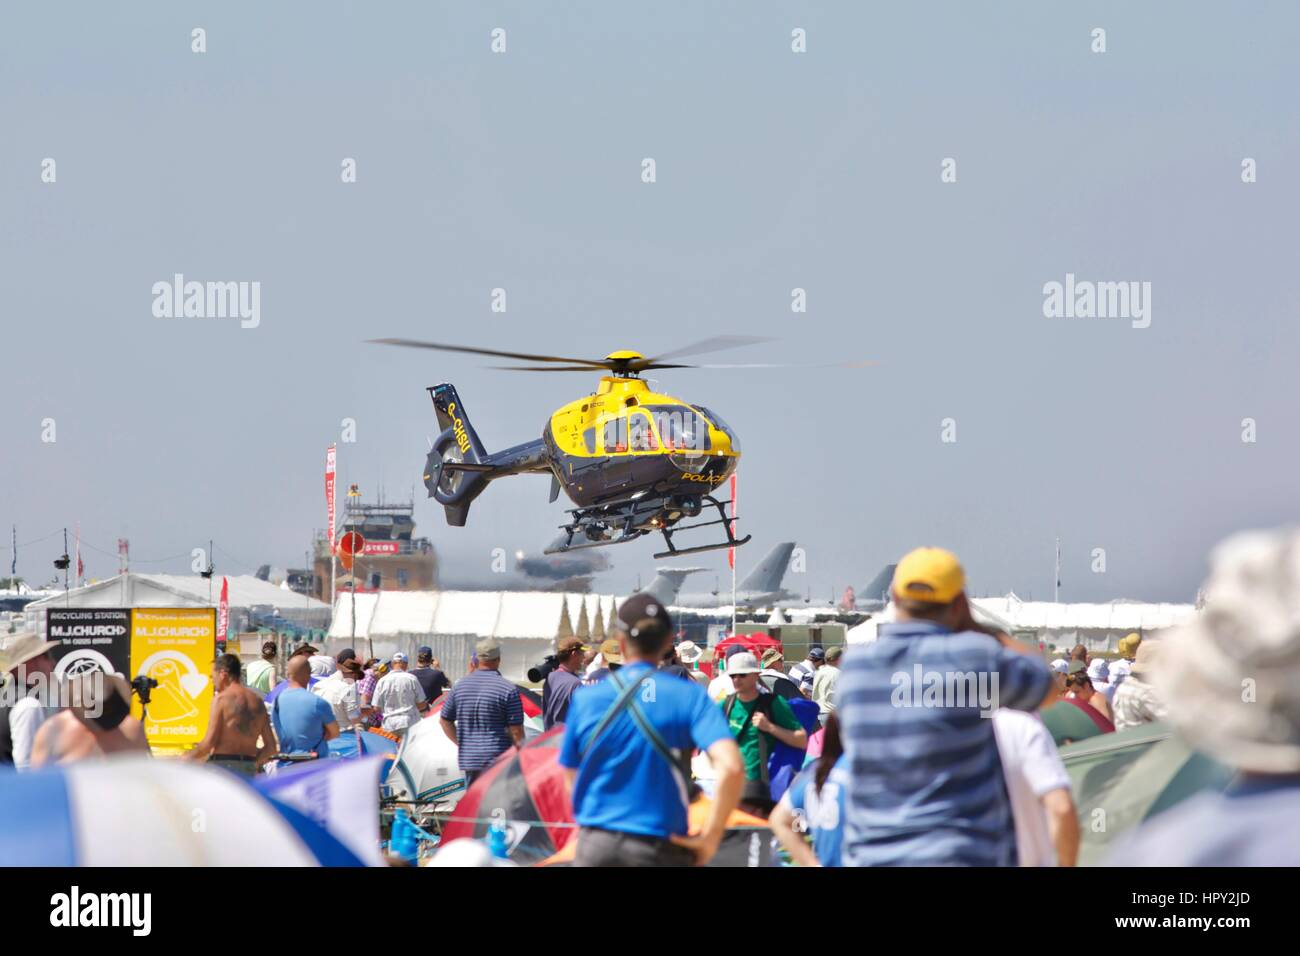 Police Helicopter - Stock Image